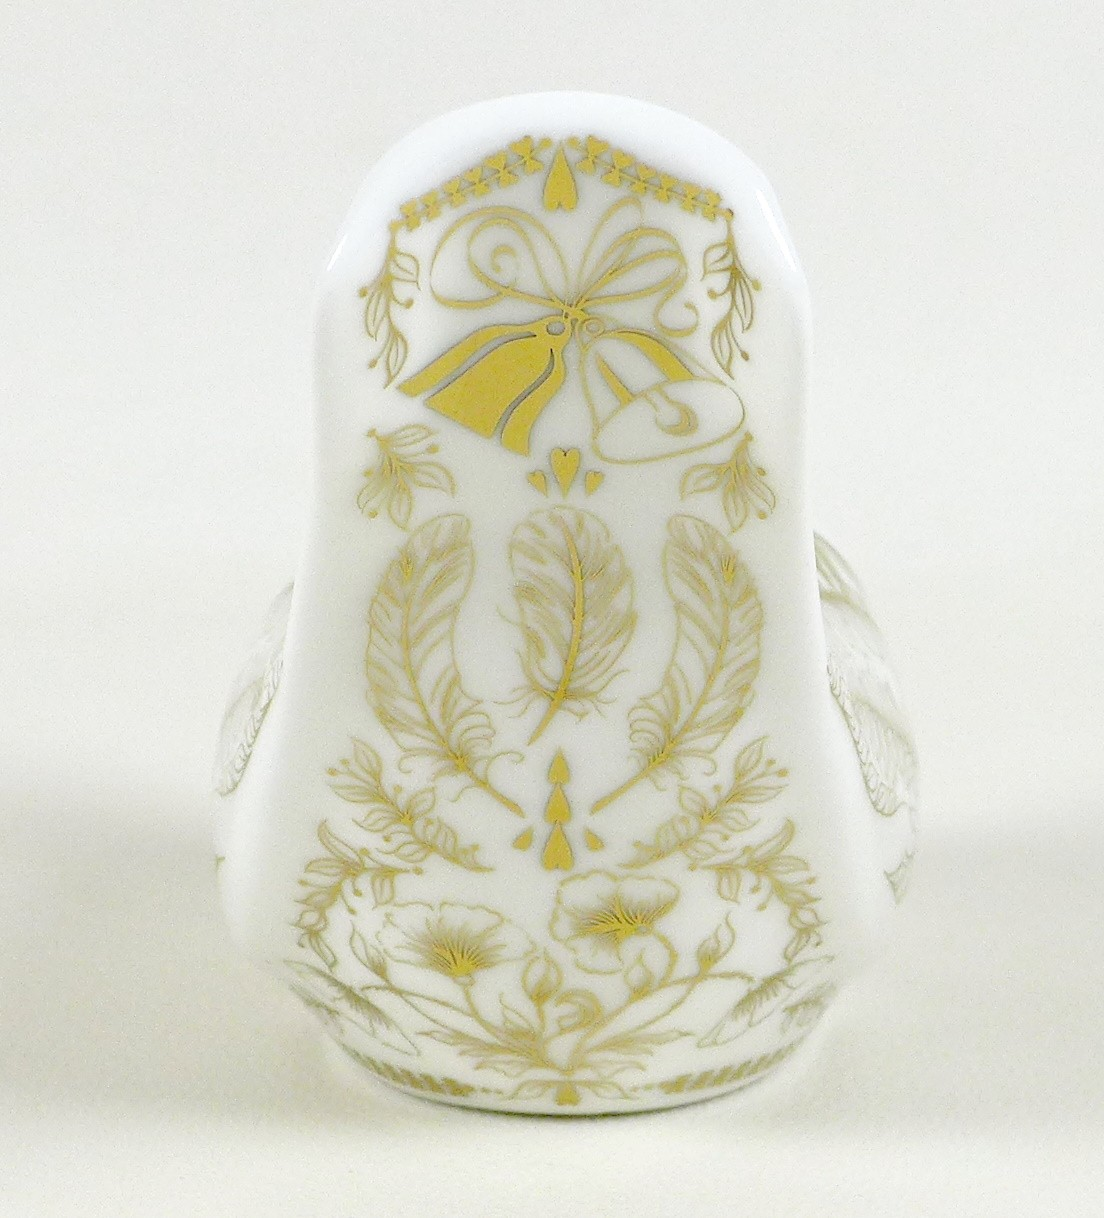 A Royal Crown Derby commemorative paperweight, modelled as 'Dove of Peace', 1914-1918, to mark the - Image 3 of 7